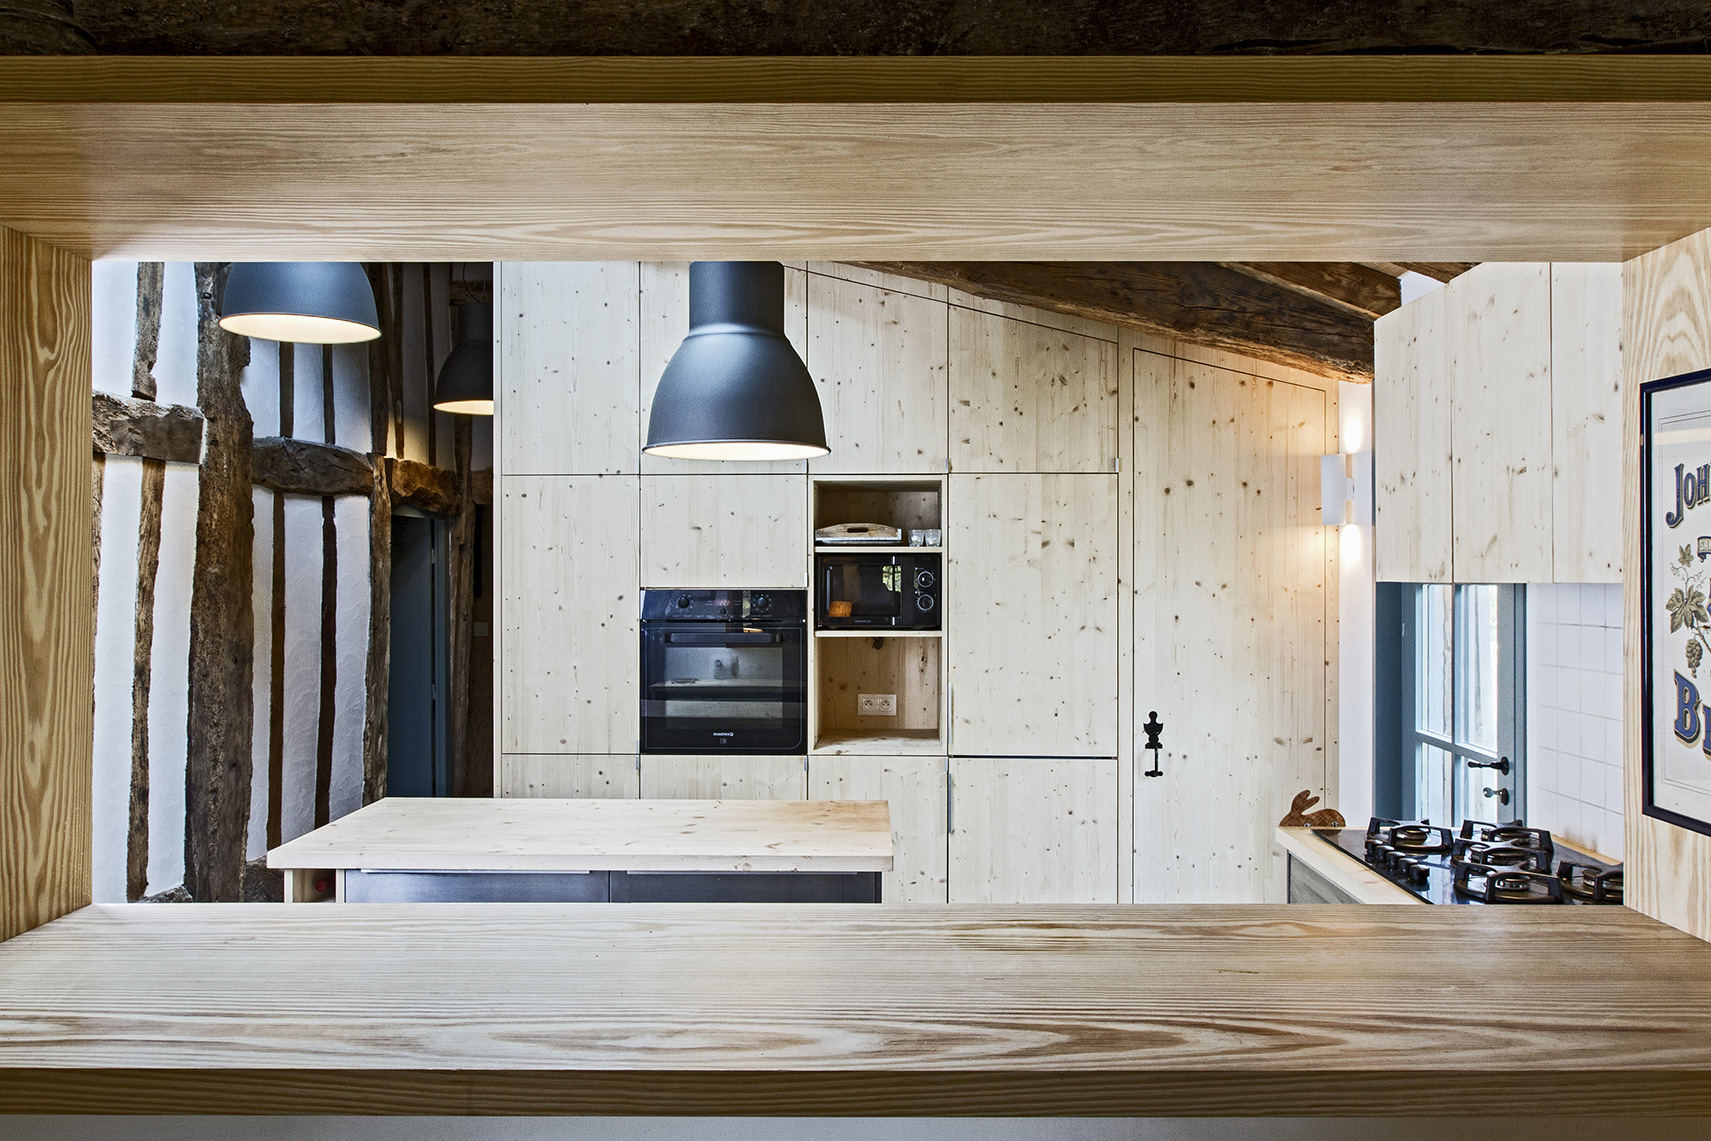 LALA-ARCHITECTES-MAISON-BASQUE-I004